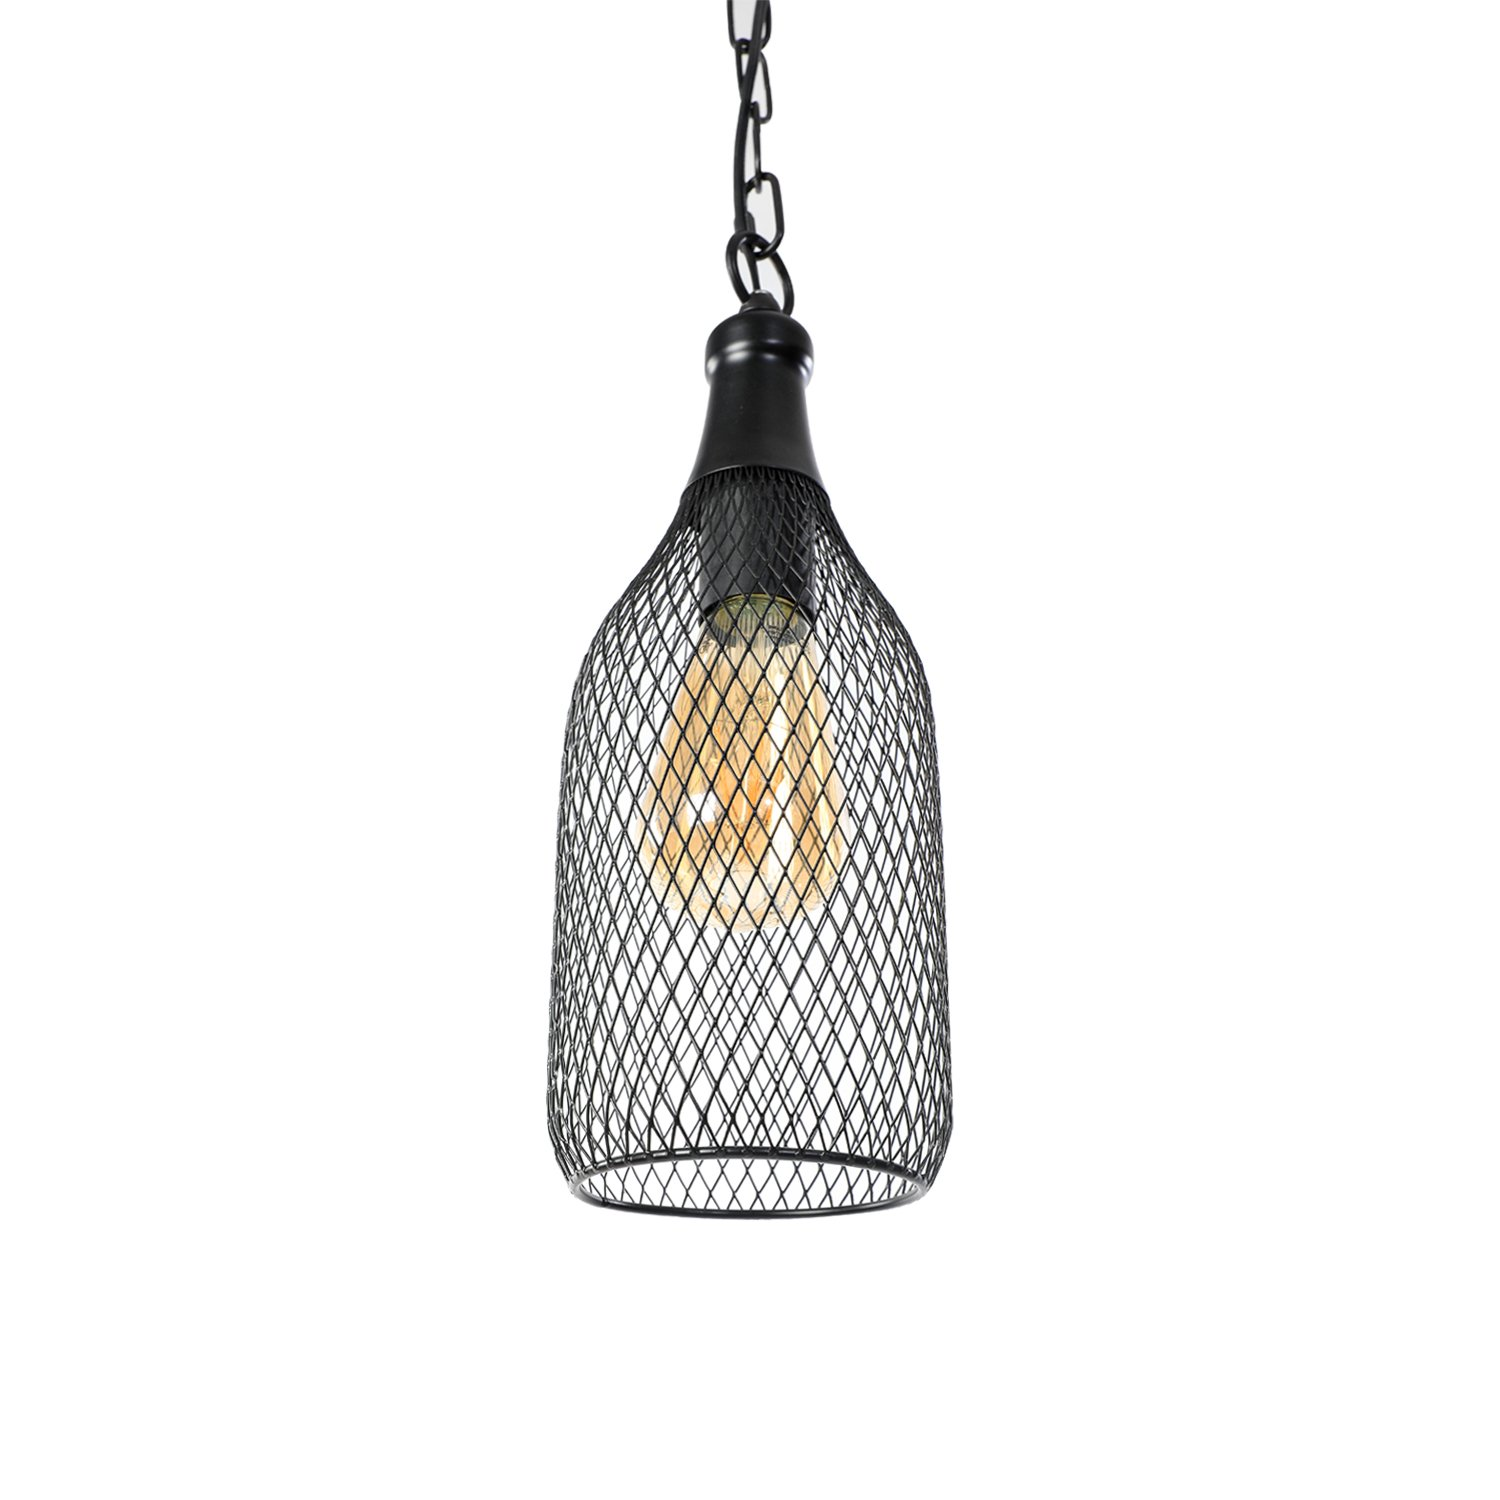 Lit path pendant light hanging lantern lighting fixture for kitchen and dining room e26 e27 medium base metal construction with black finish